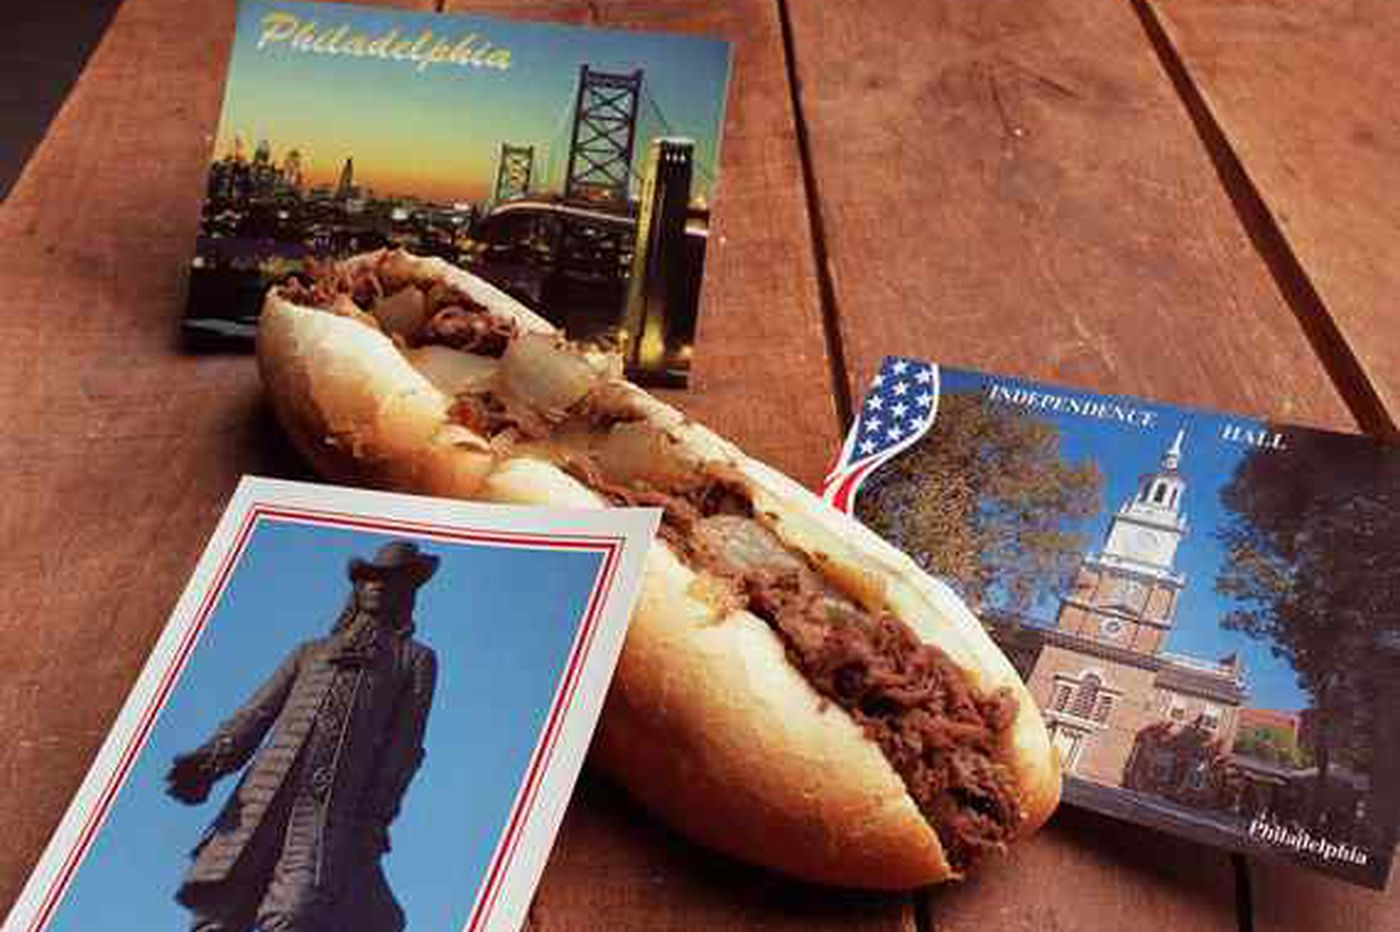 Philly cheesesteaks' true potential can be unlocked by more topping acceptance | Opinion